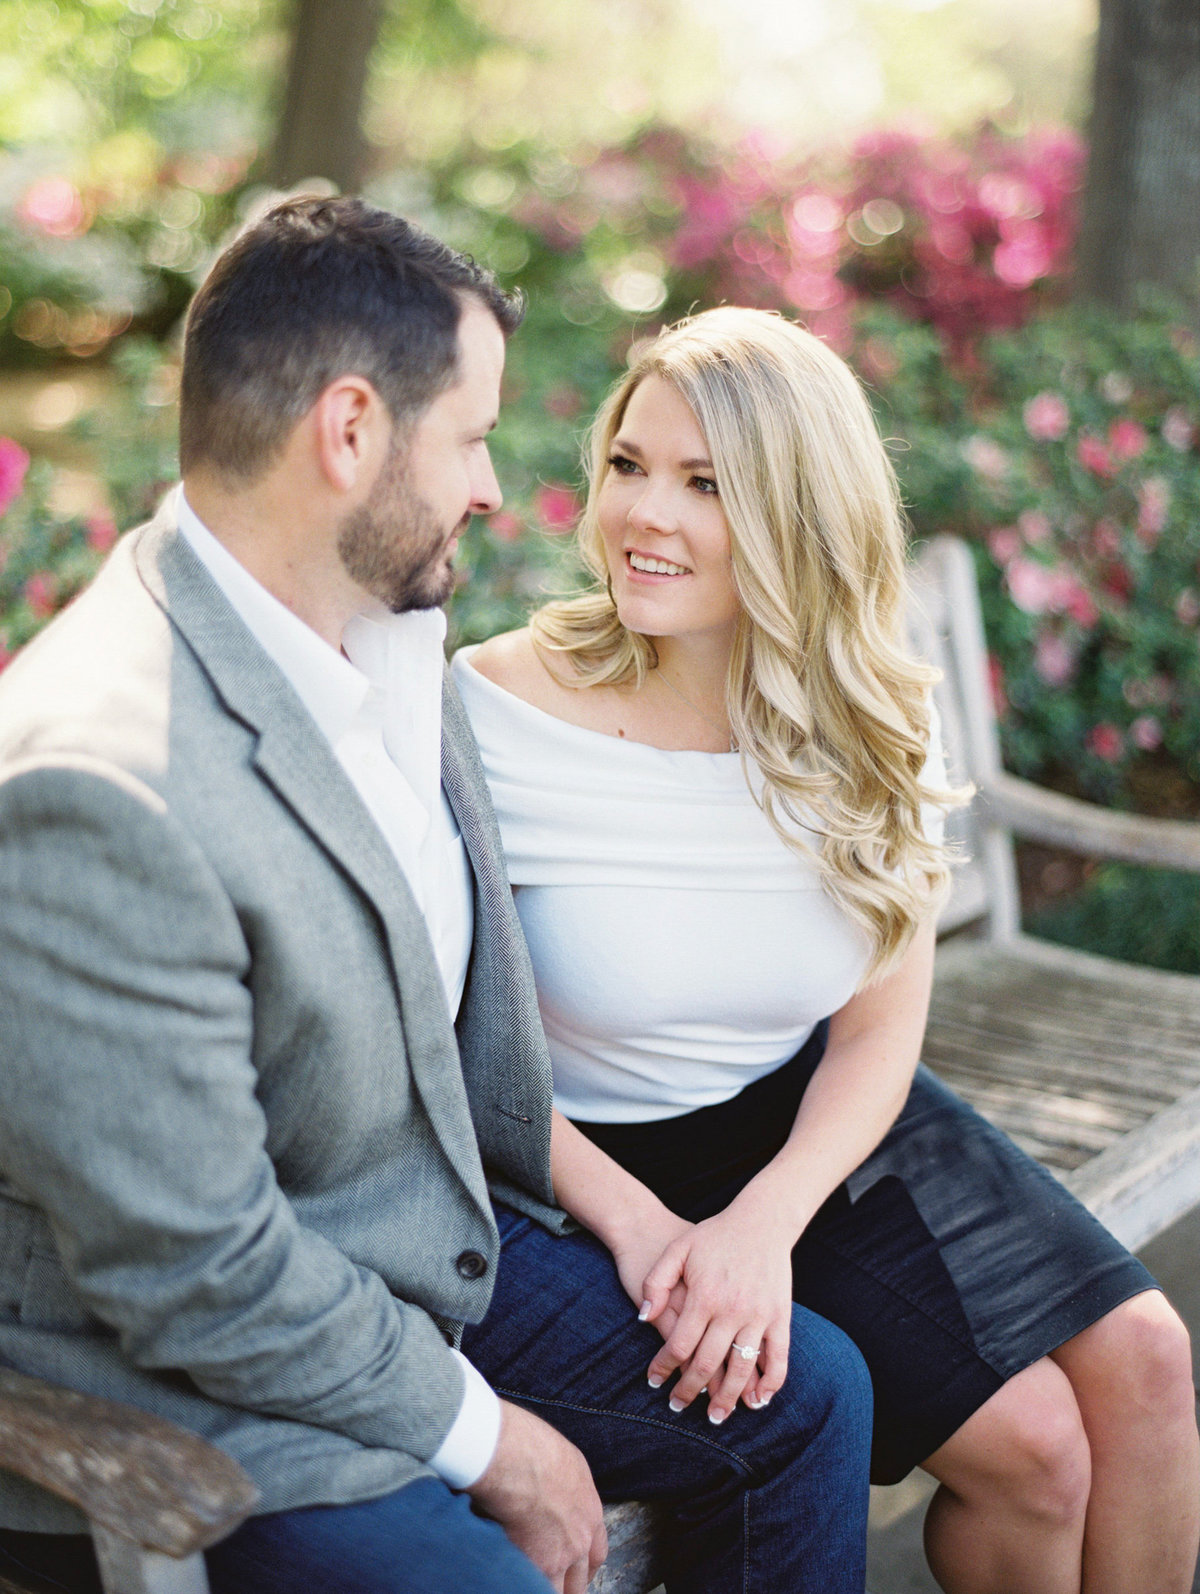 Courtney Hanson Photography - Dallas Spring Engagement Photos-007